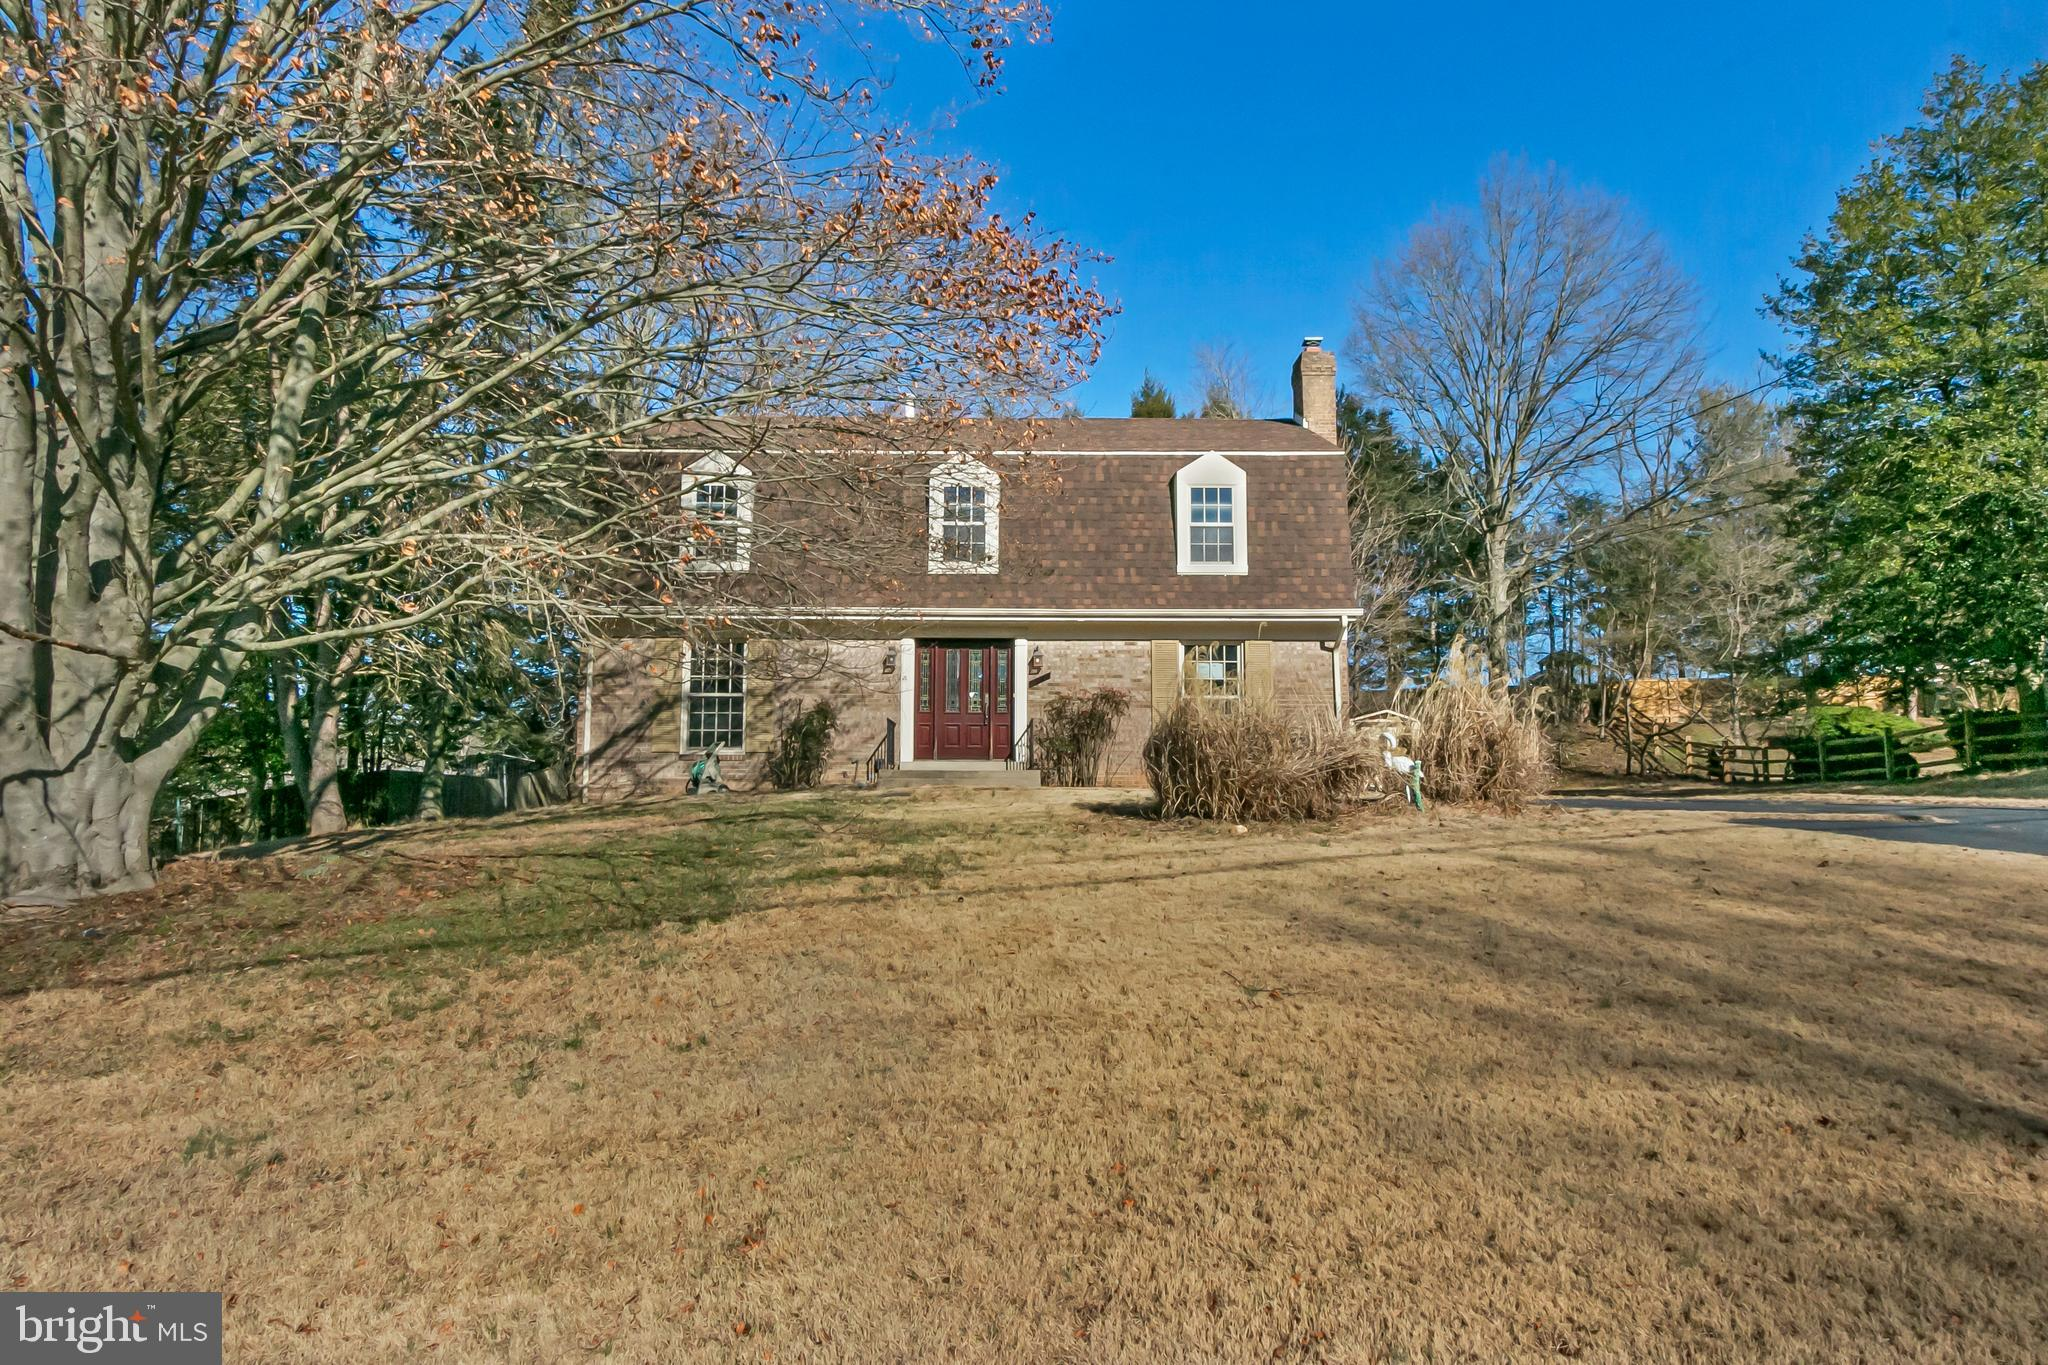 517 Whitingham Dr, Silver Spring, MD, 20904